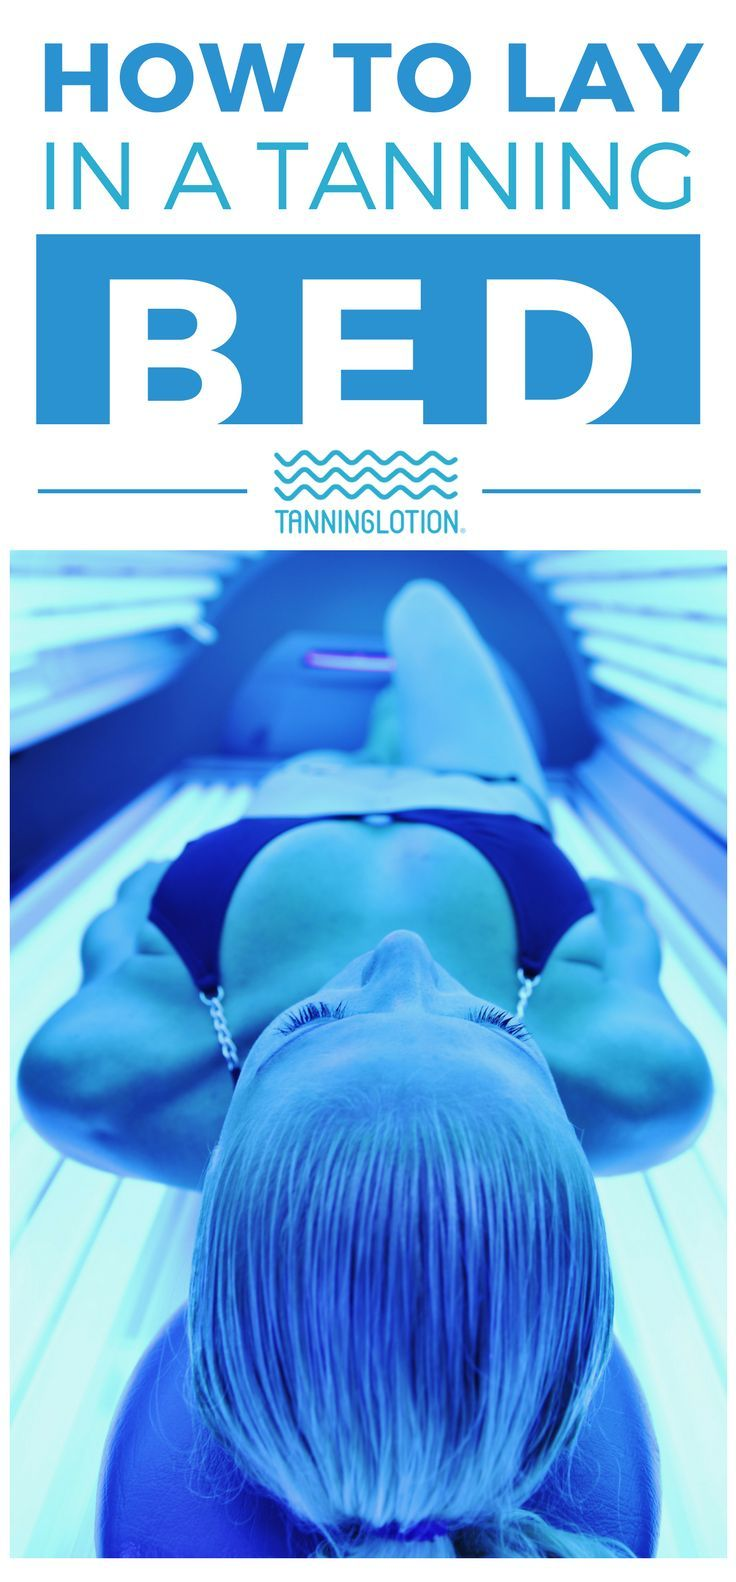 aae7559a489b8beb426d64d623646479 - How To Get Rid Of Tan Lines In Tanning Bed